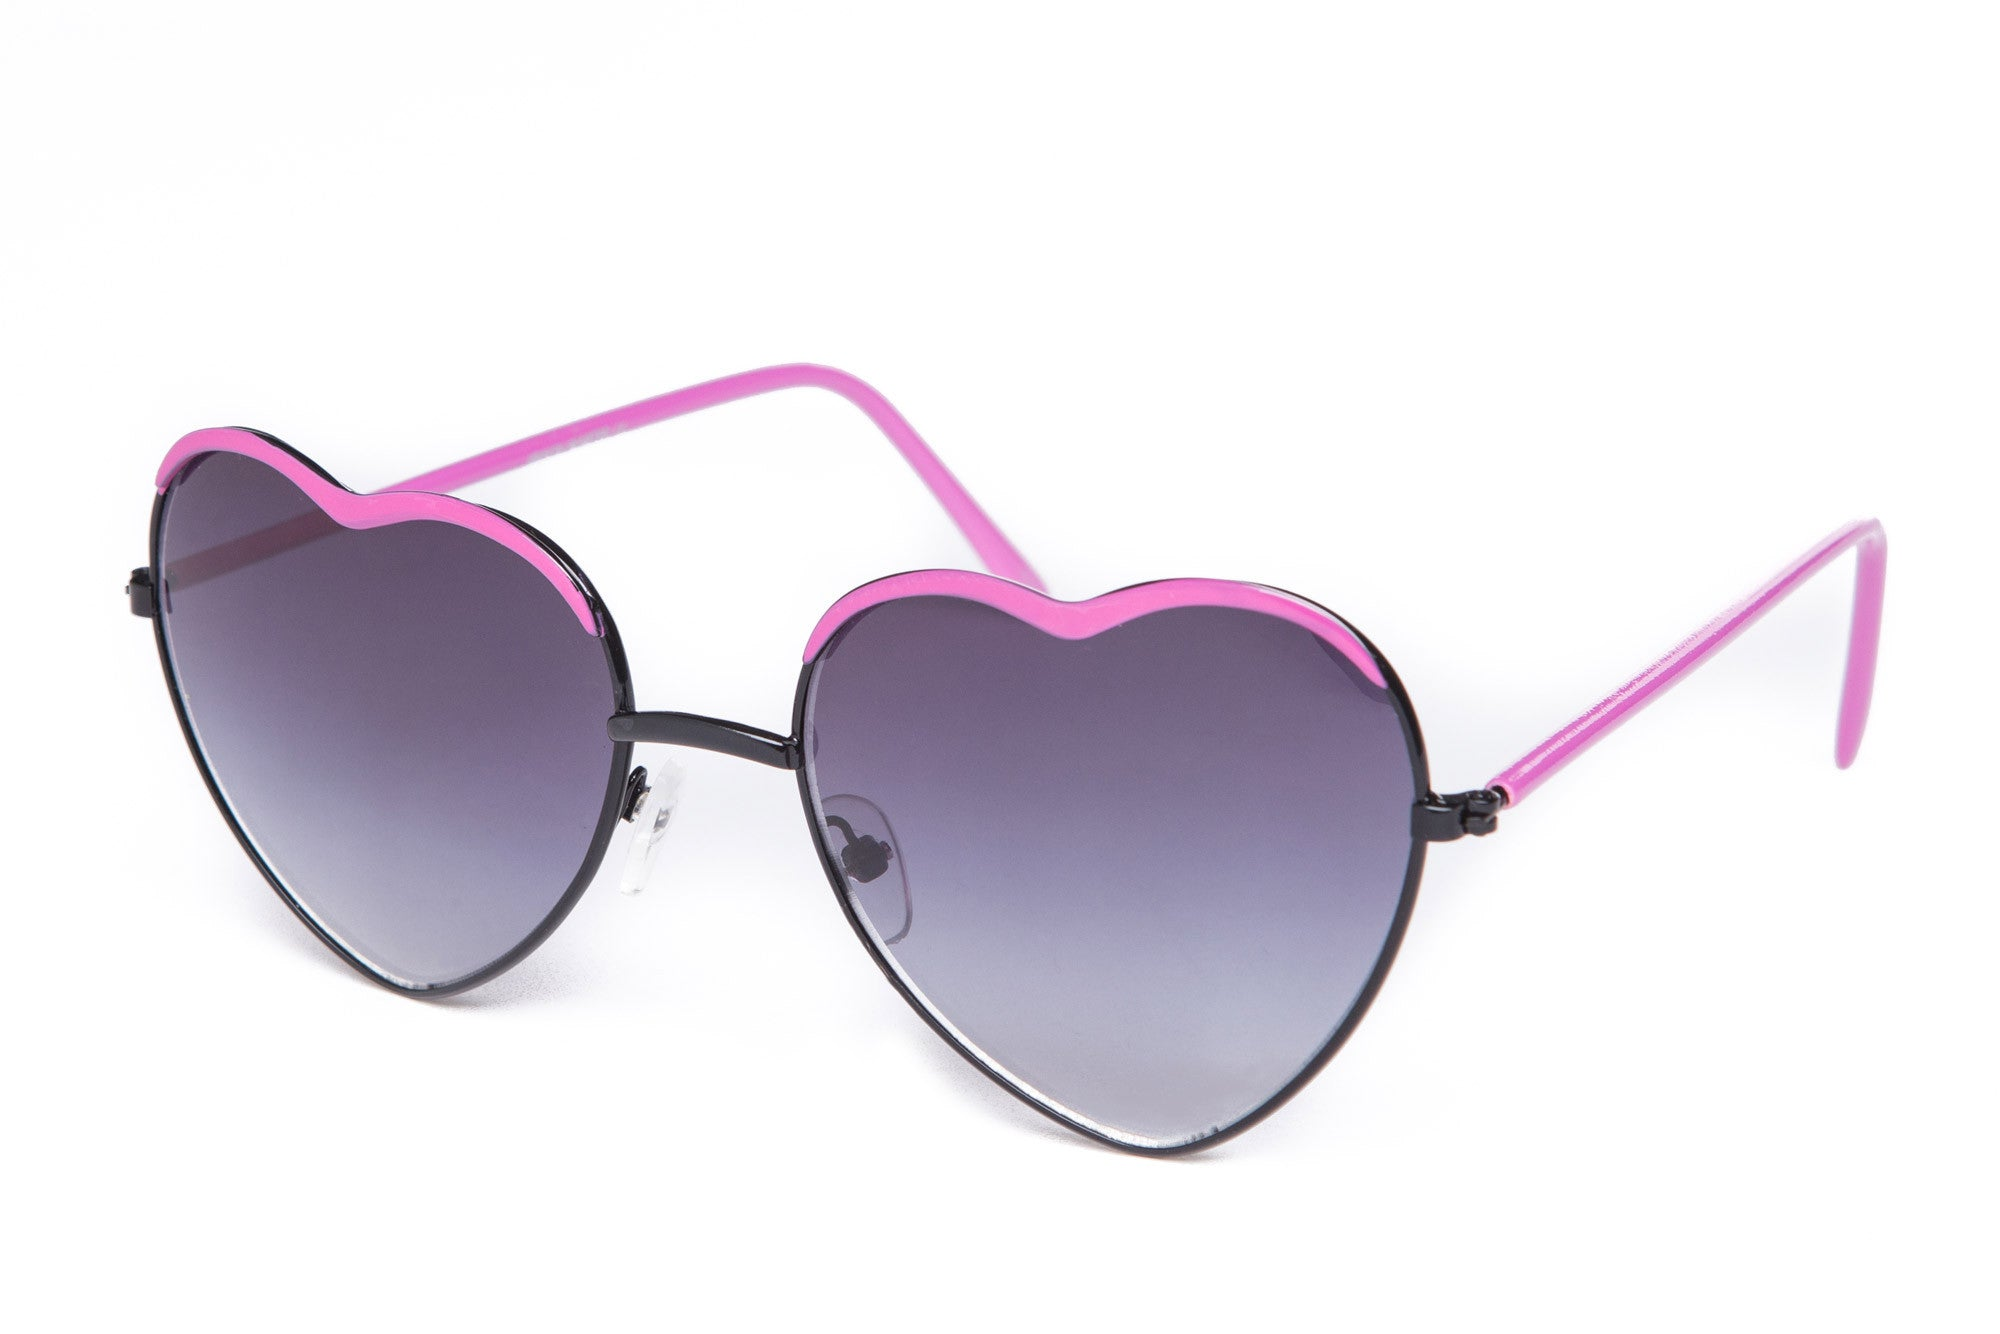 Brokenhearted Lover Sunglasses